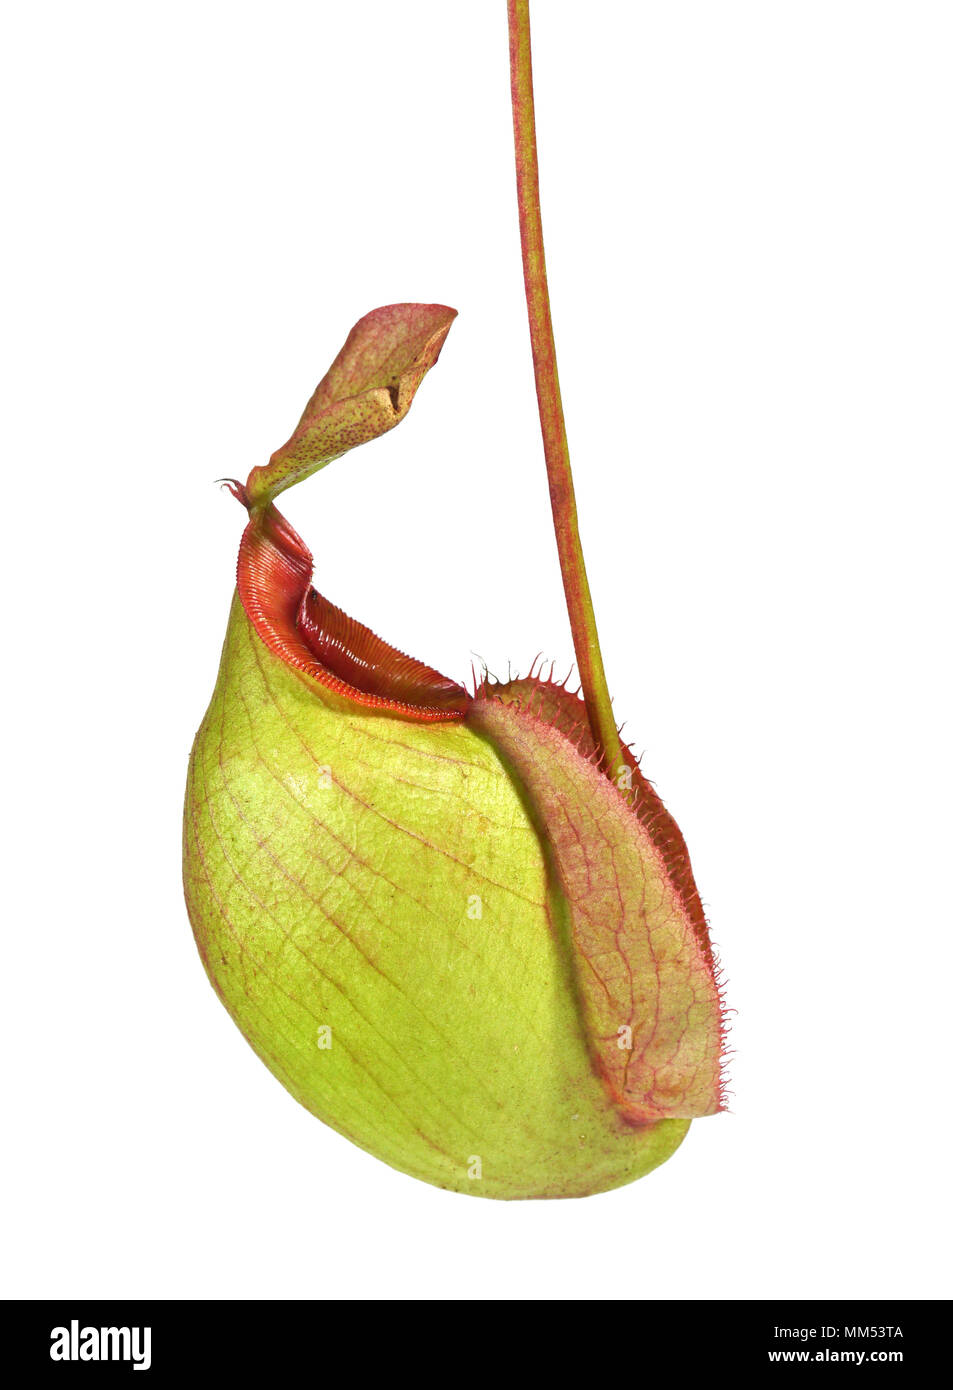 Nepenthes ampullaria - Stock Image